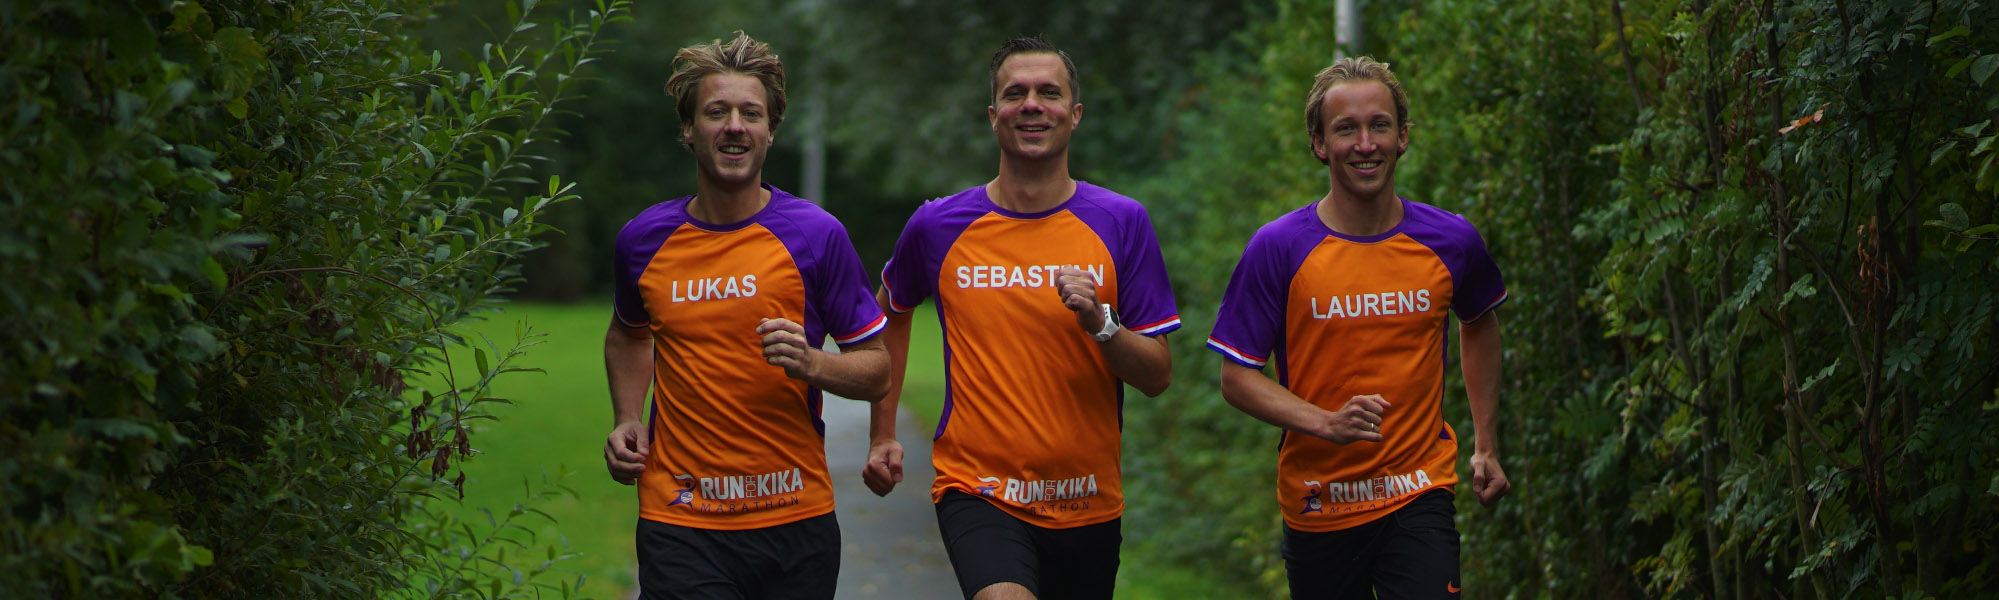 Foto van team Mara Dietvorst tijdens Run for KiKa Marathon.